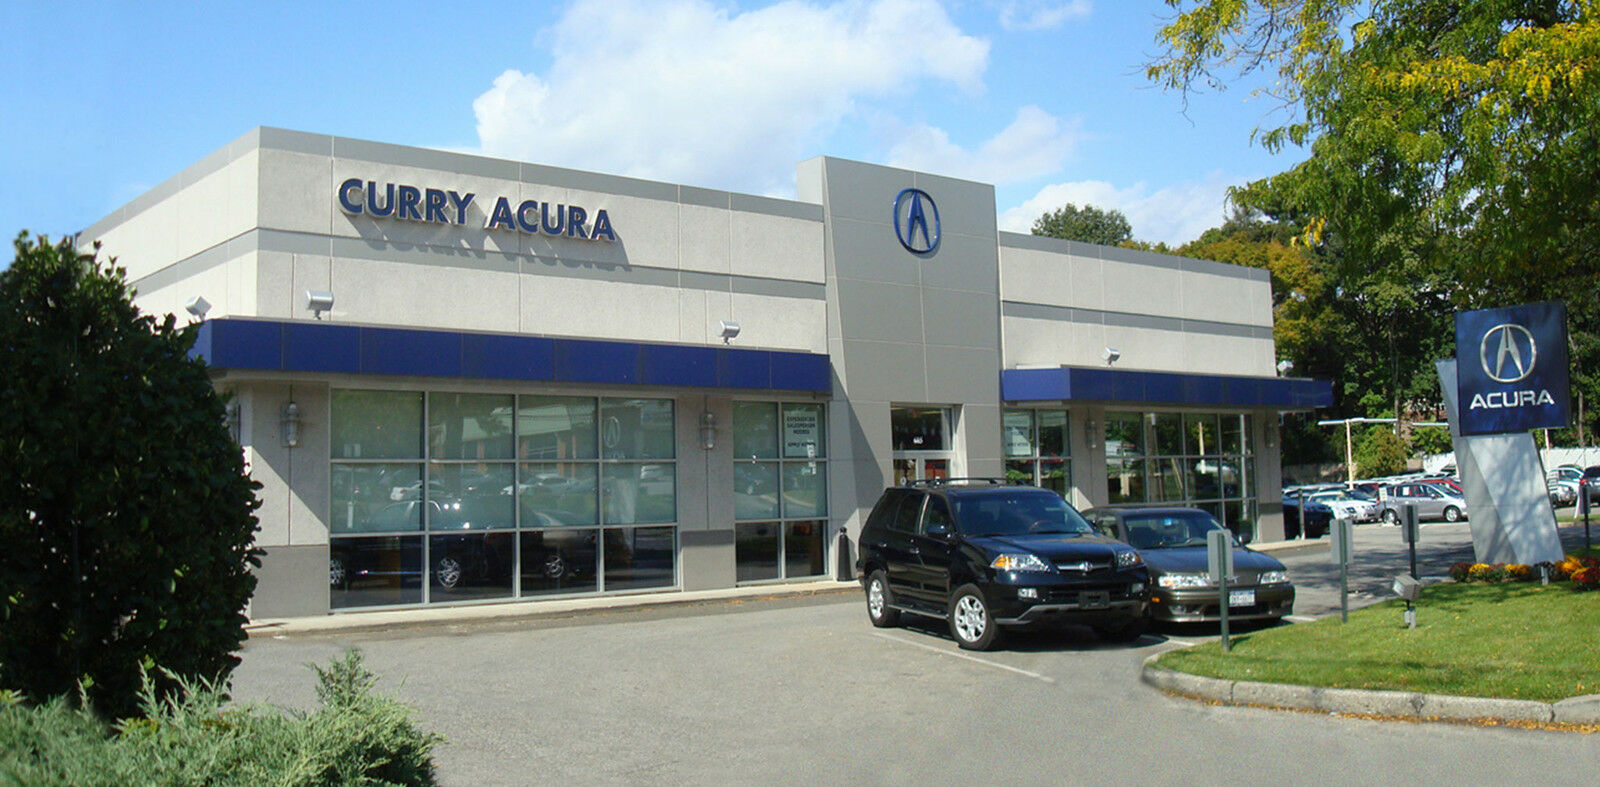 Curry Acura